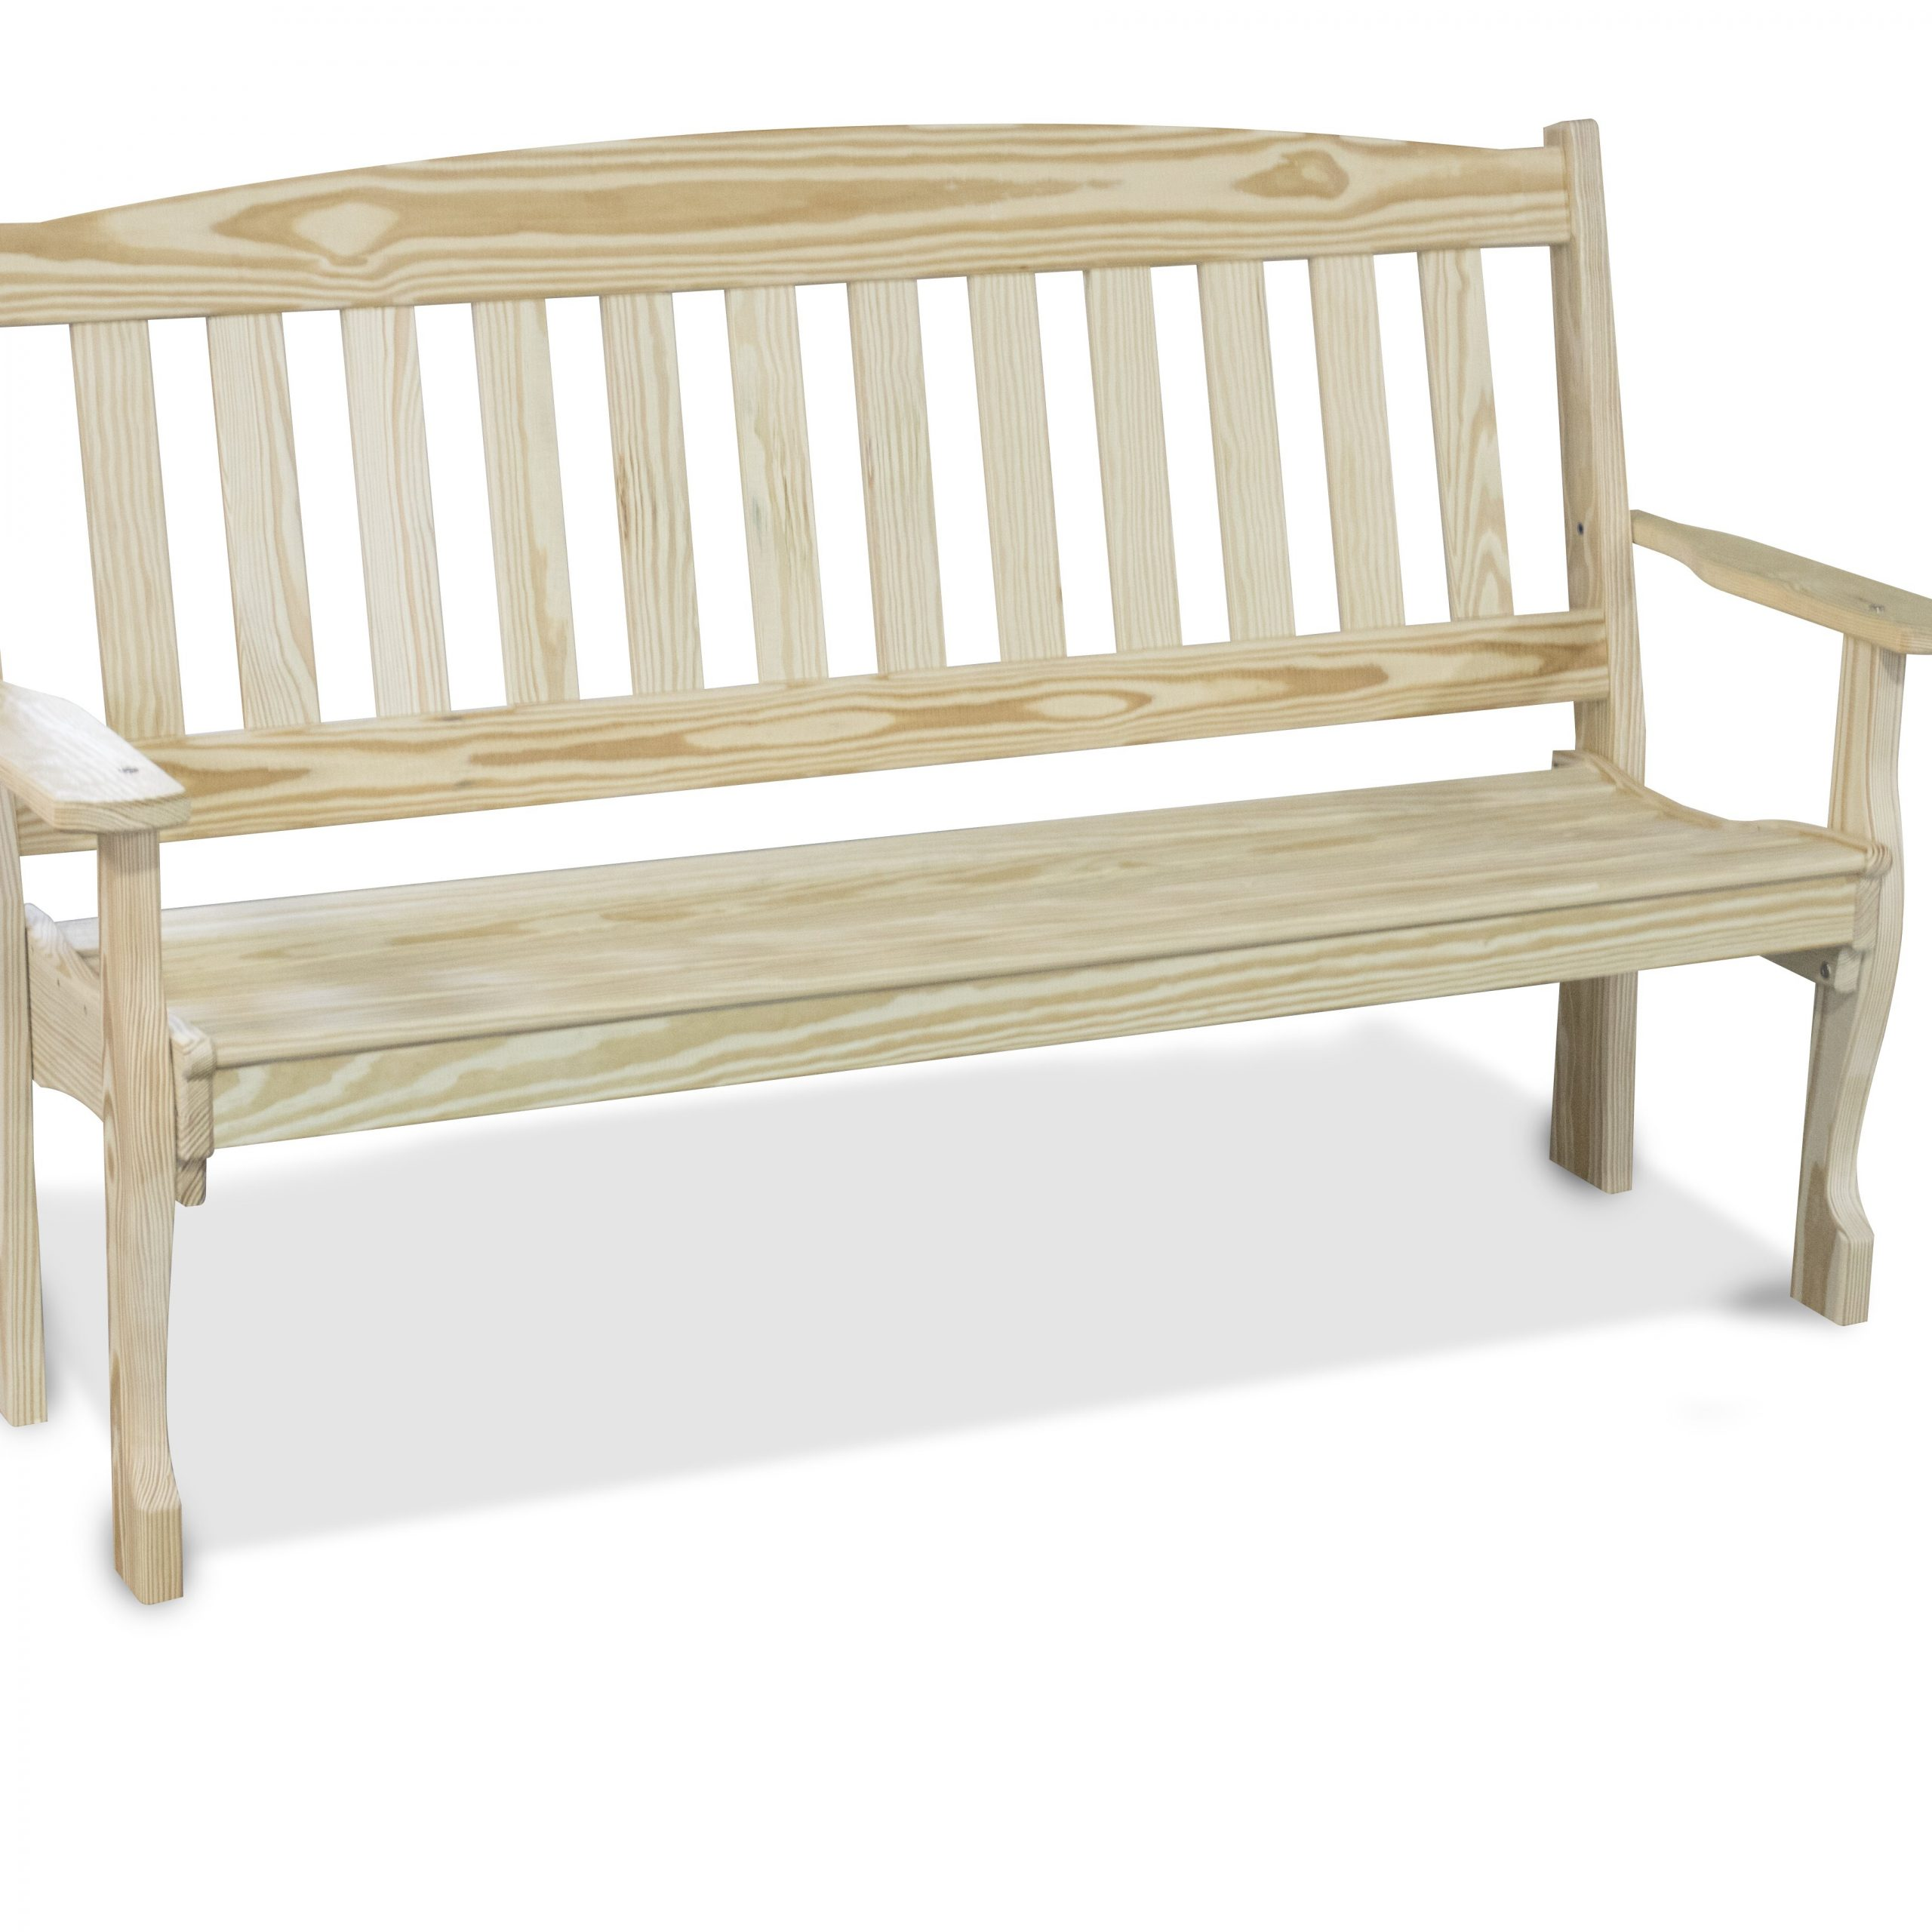 Trendy Wooden Garden Bench With Gehlert Traditional Patio Iron Garden Benches (View 21 of 30)